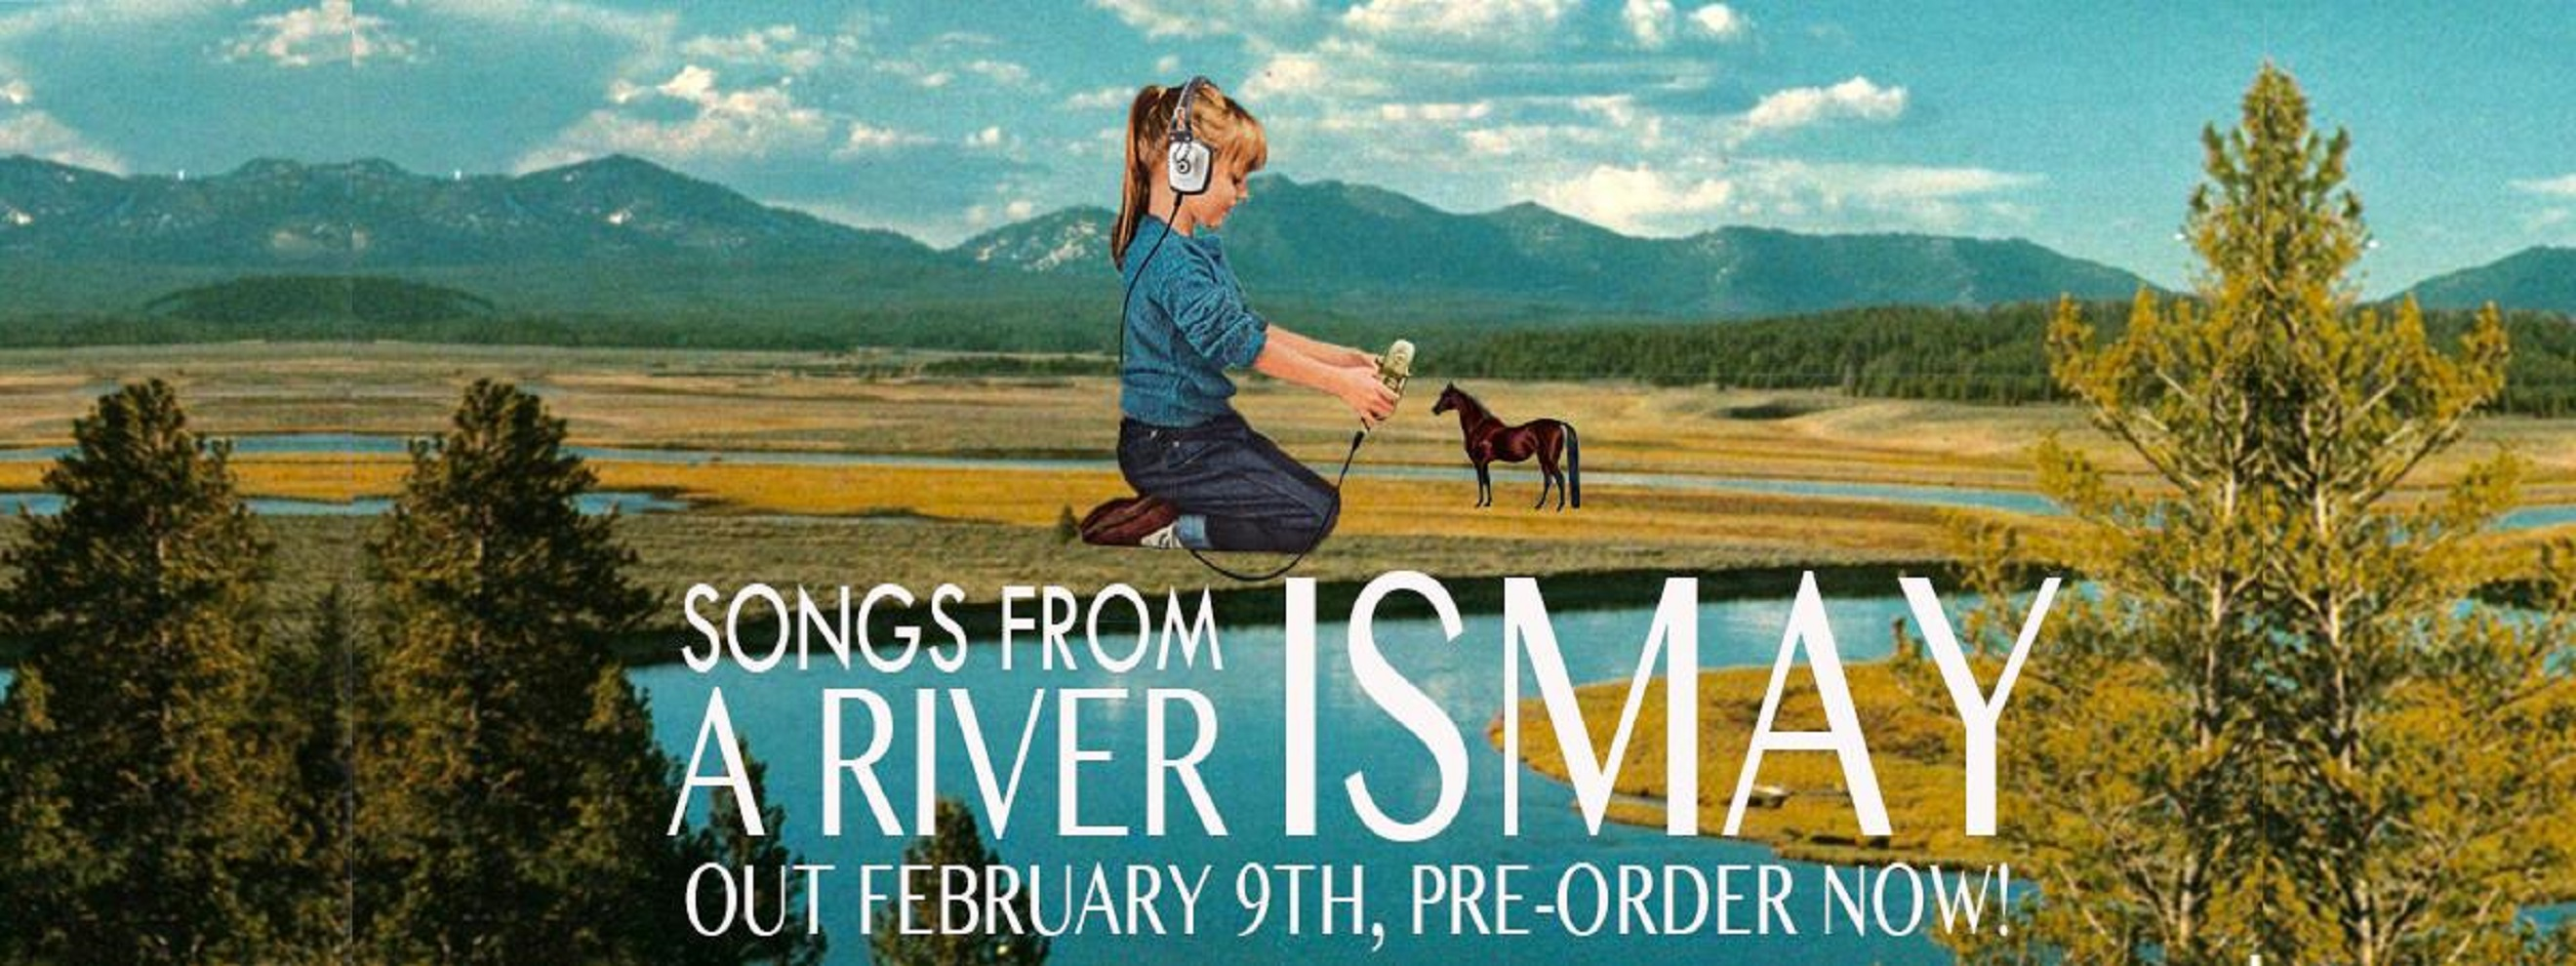 Ismay - 'Songs From A River' EP Out 2/9